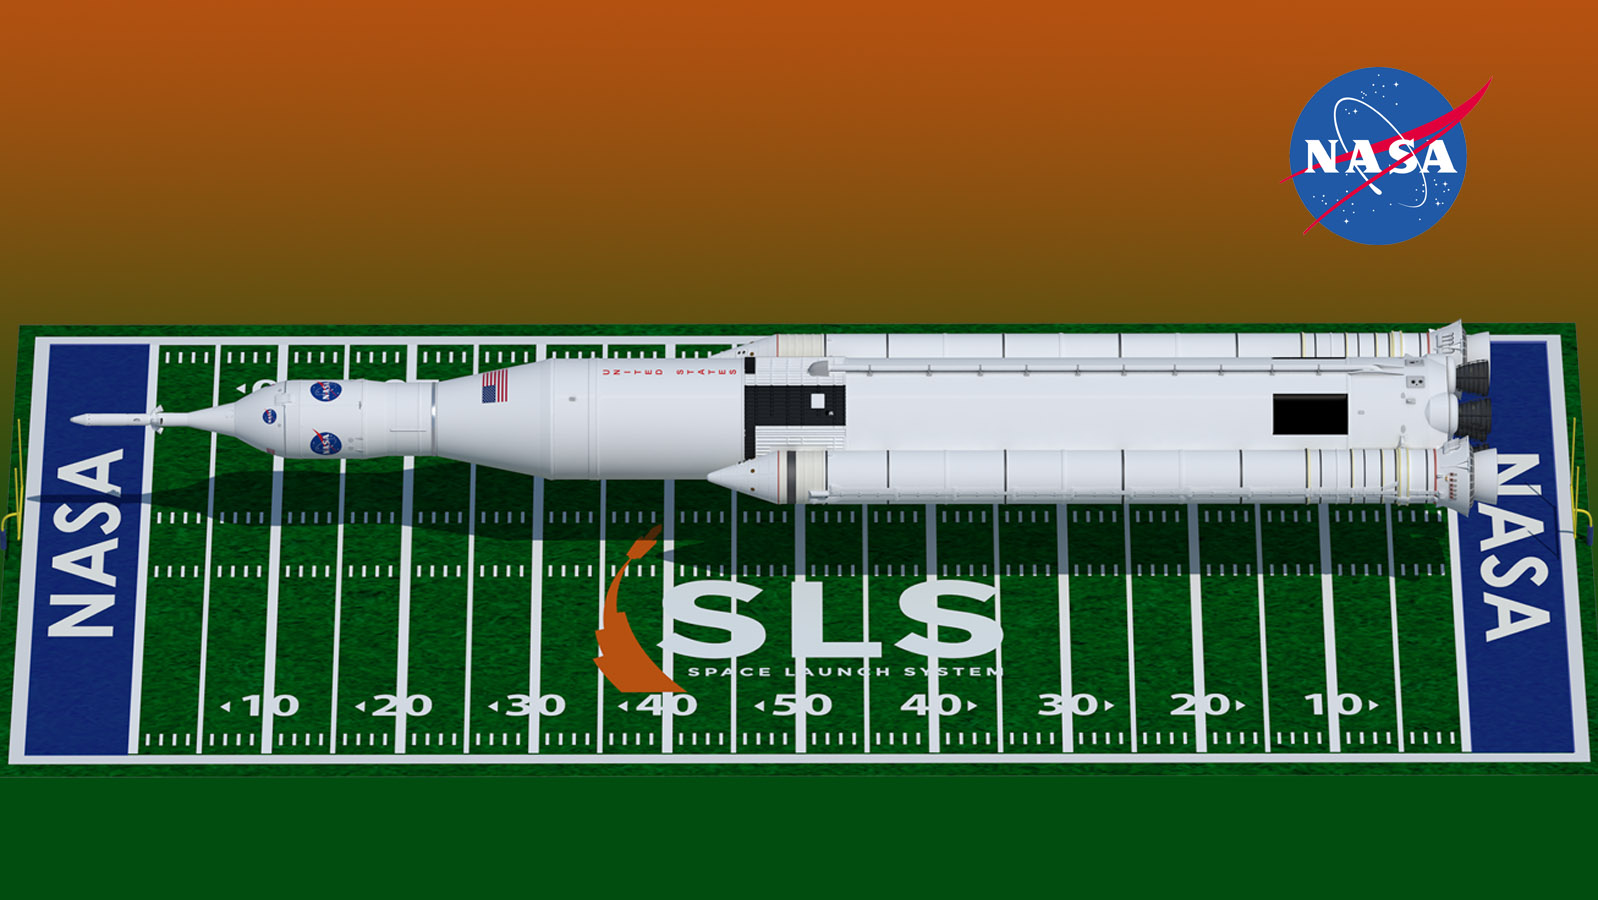 A graphic showing that SLS would stretch almost from one end of a football field to the other